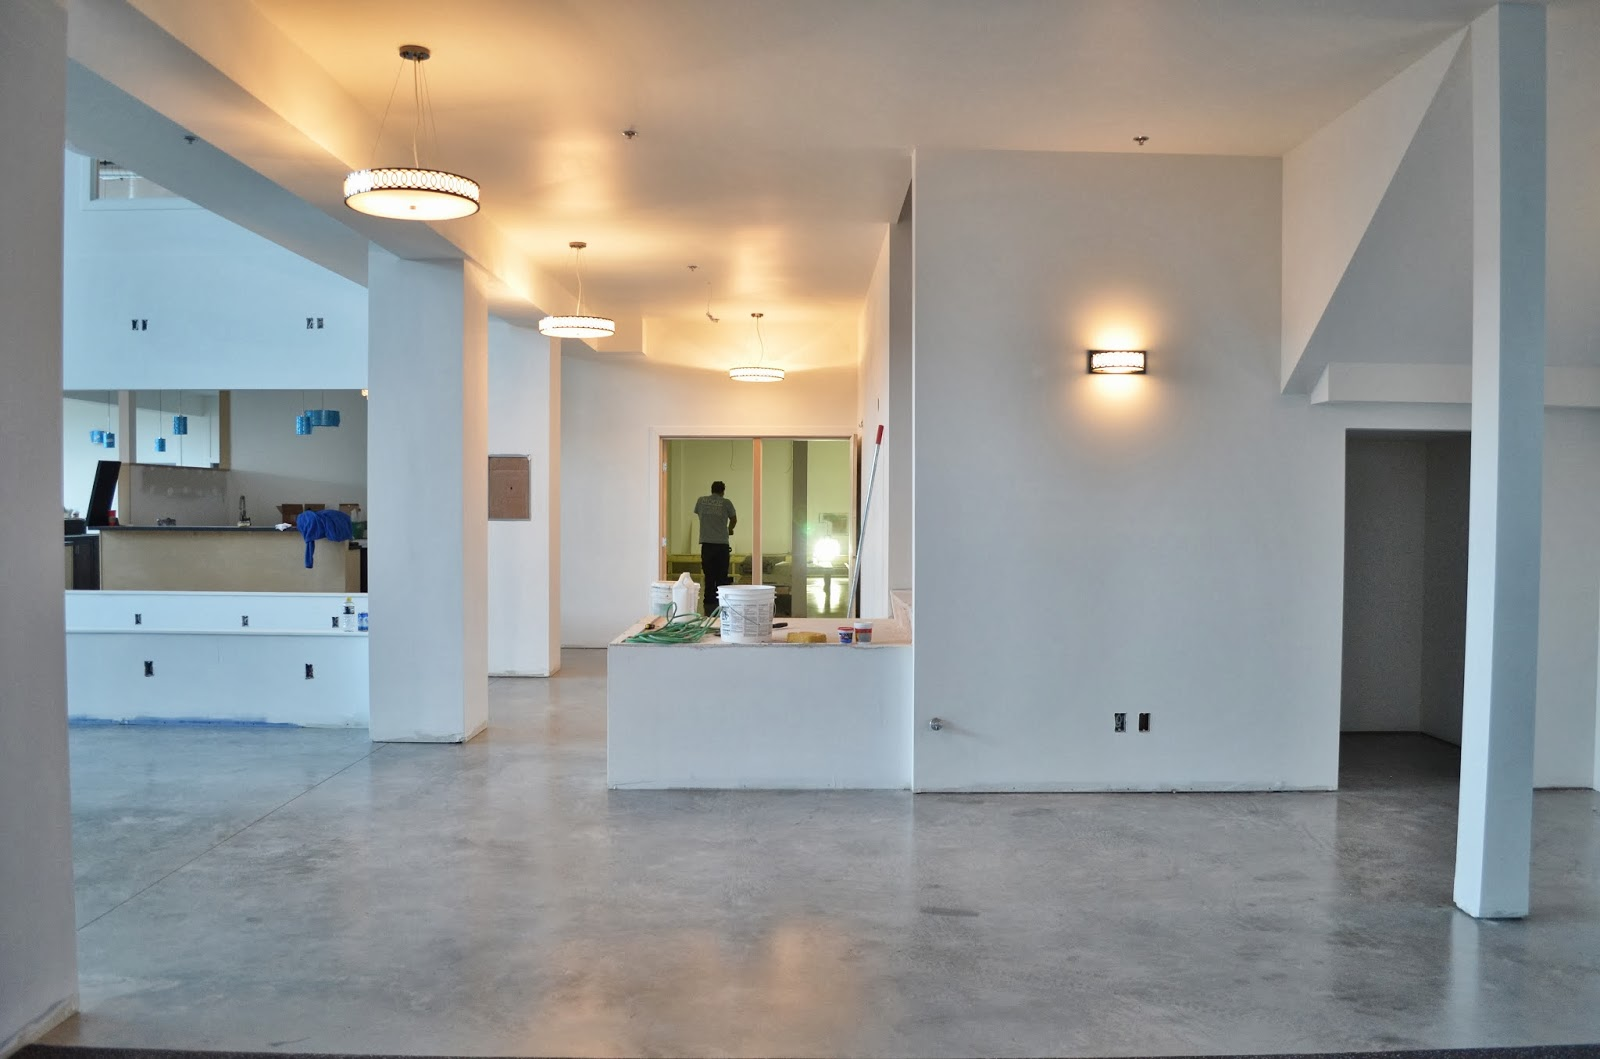 MODE CONCRETE: Raw Concrete Floors Naturally Look Clean and ...